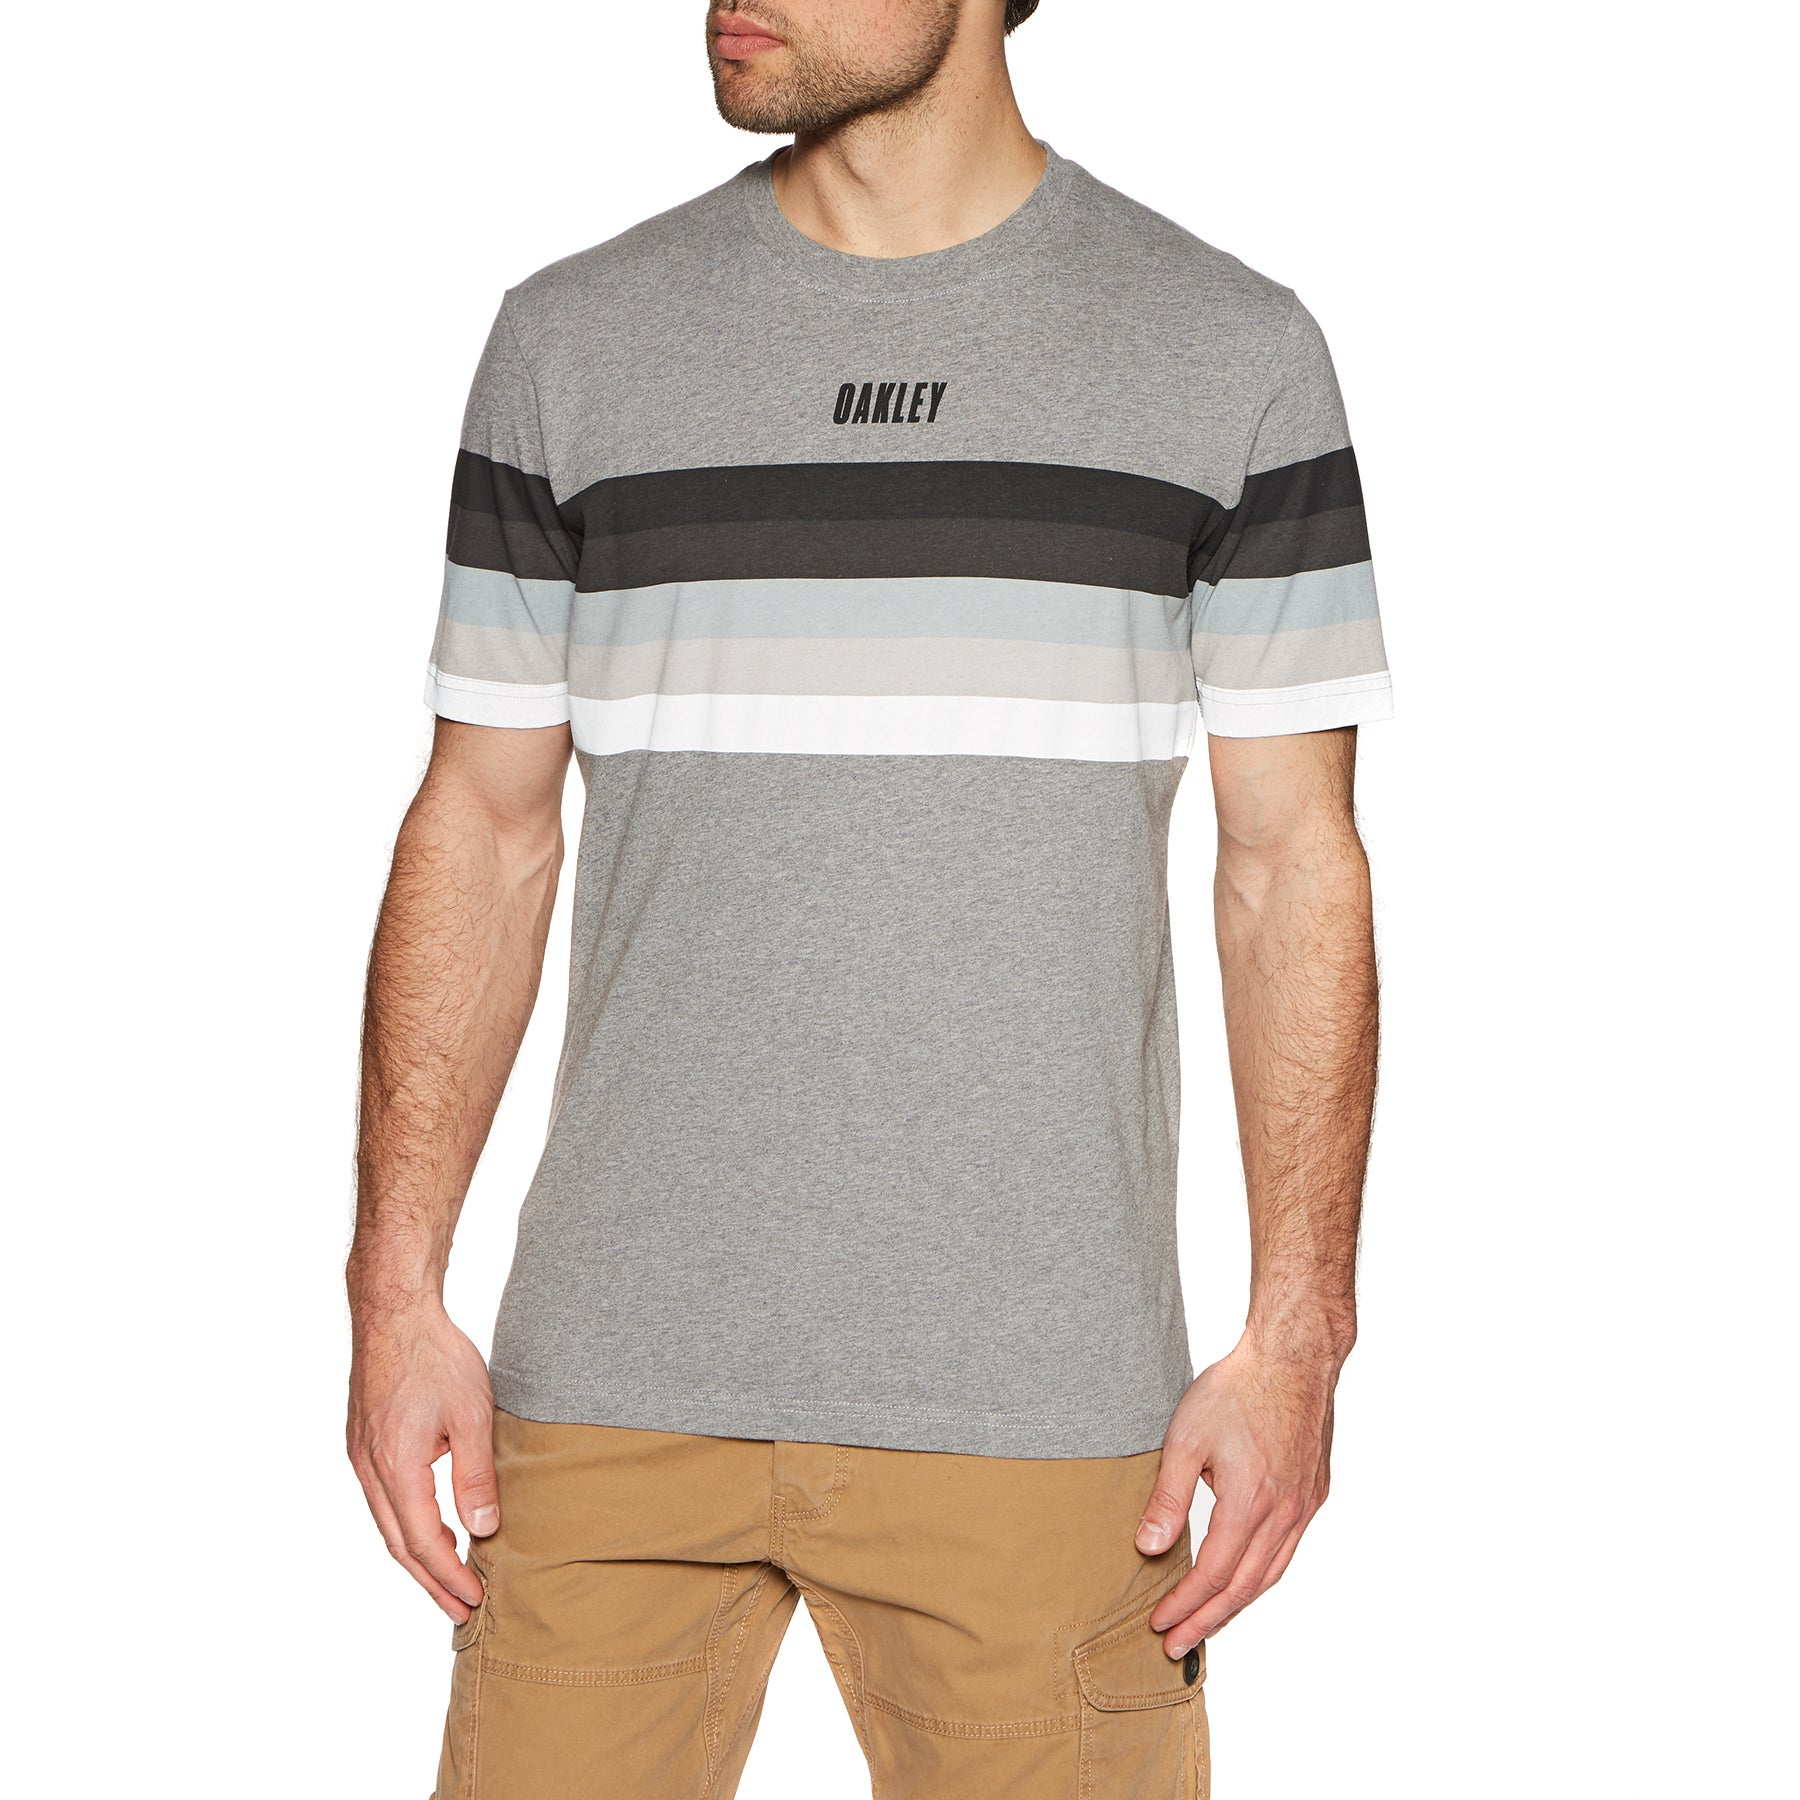 Oakley Tn Racing Sunset Stripe Short Sleeve T-Shirt